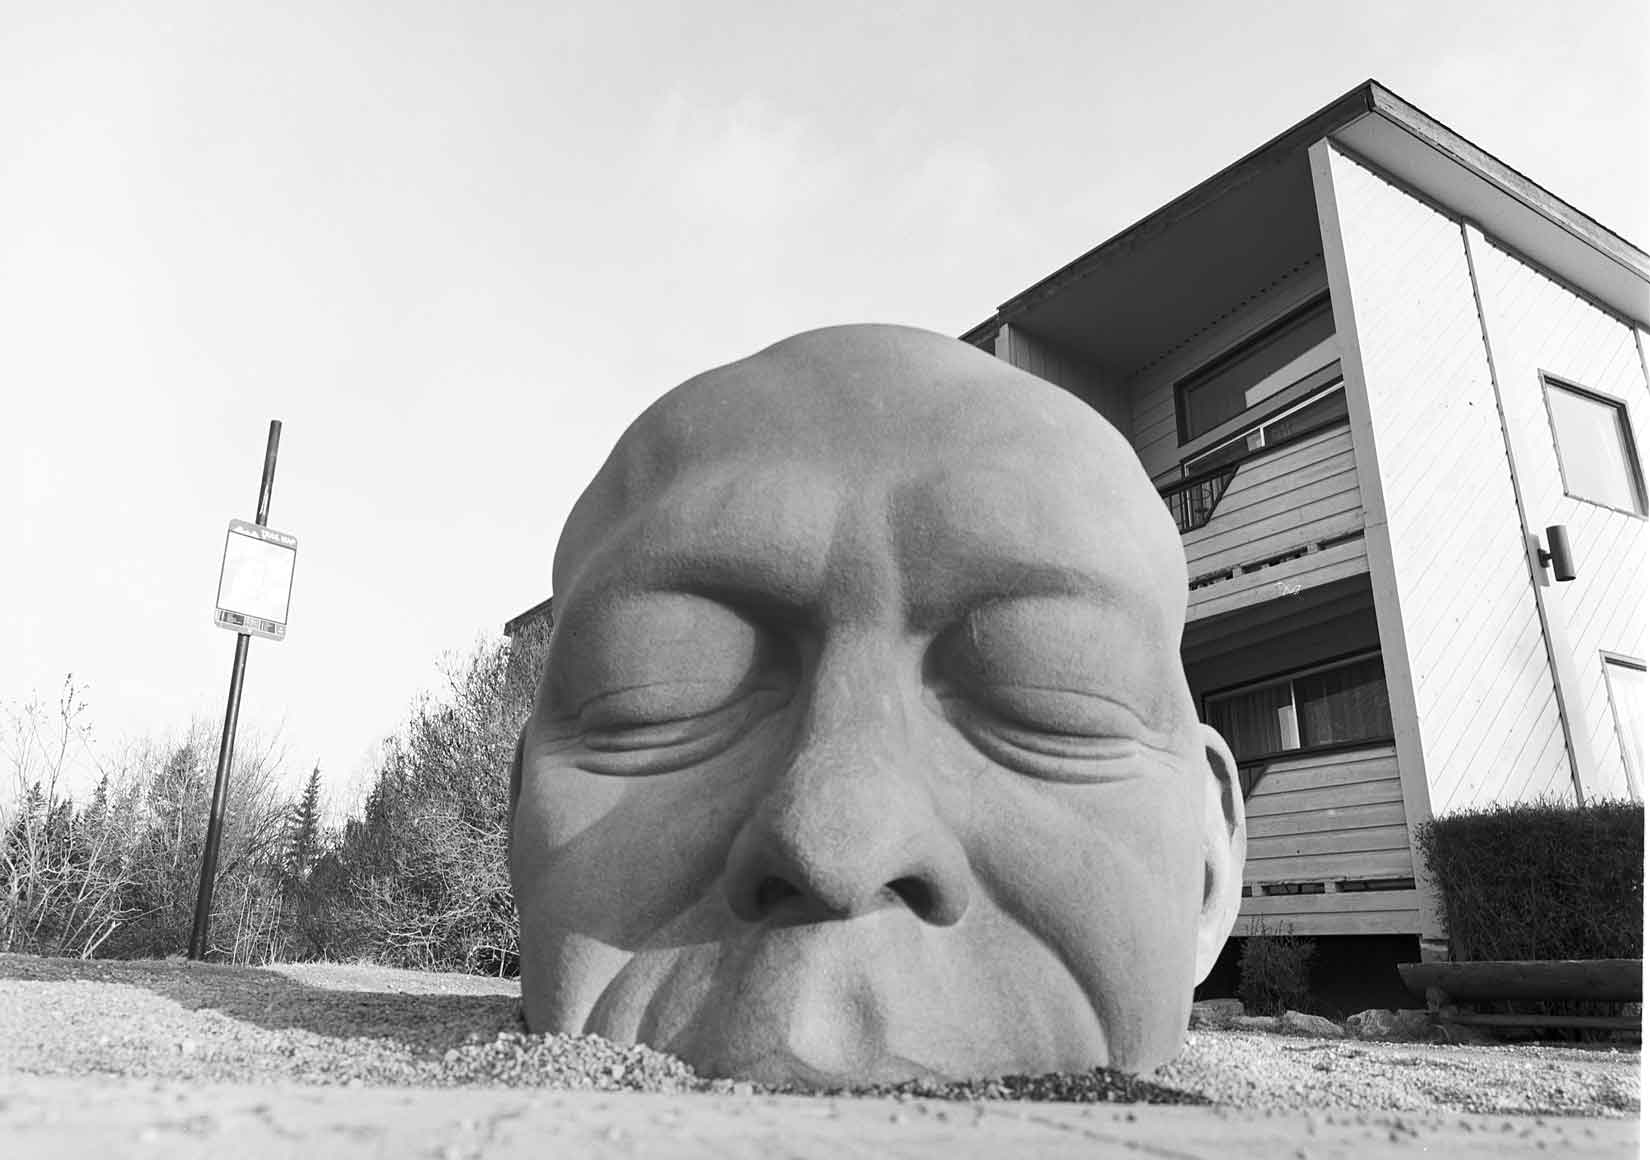 The Big Head statue downtown Canmore. Photo by Damian Lamartine